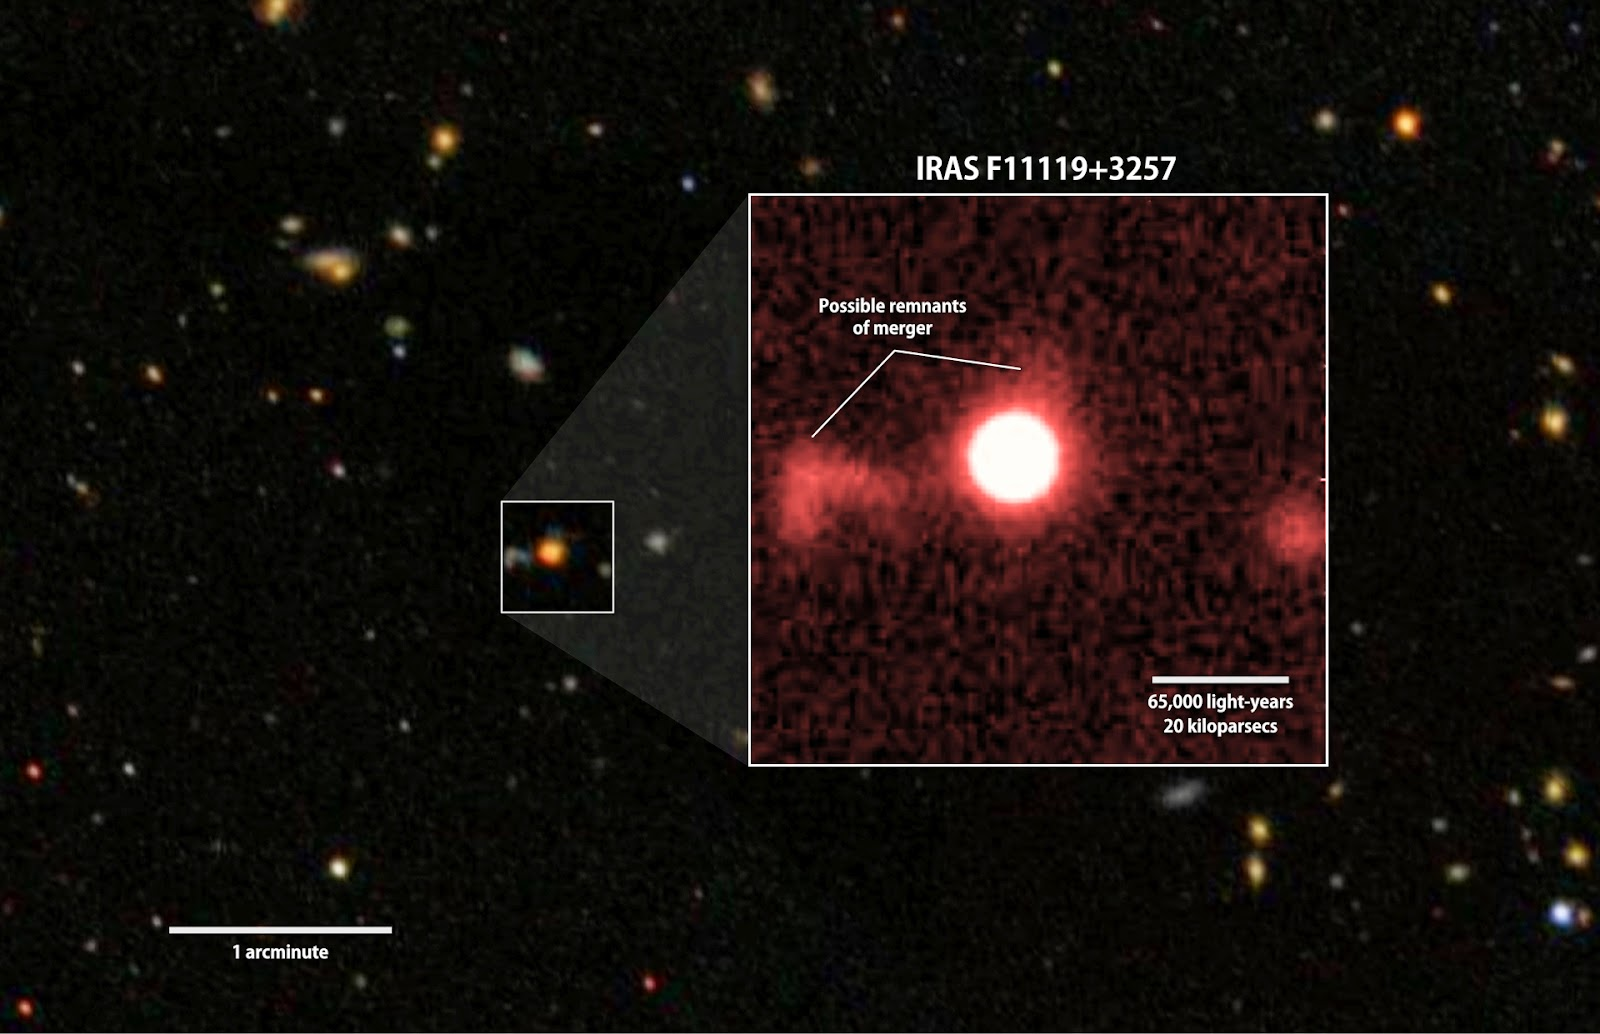 A red-filter image of IRAS F11119+3257 (inset) from the University of Hawaii's 2.2-meter telescope shows faint features that may be tidal debris, a sign of a galaxy merger. Background: A wider view of the region from the Sloan Digital Sky Survey. Image Credit: NASA's Goddard Space Flight Center/SDSS/S. Veilleux